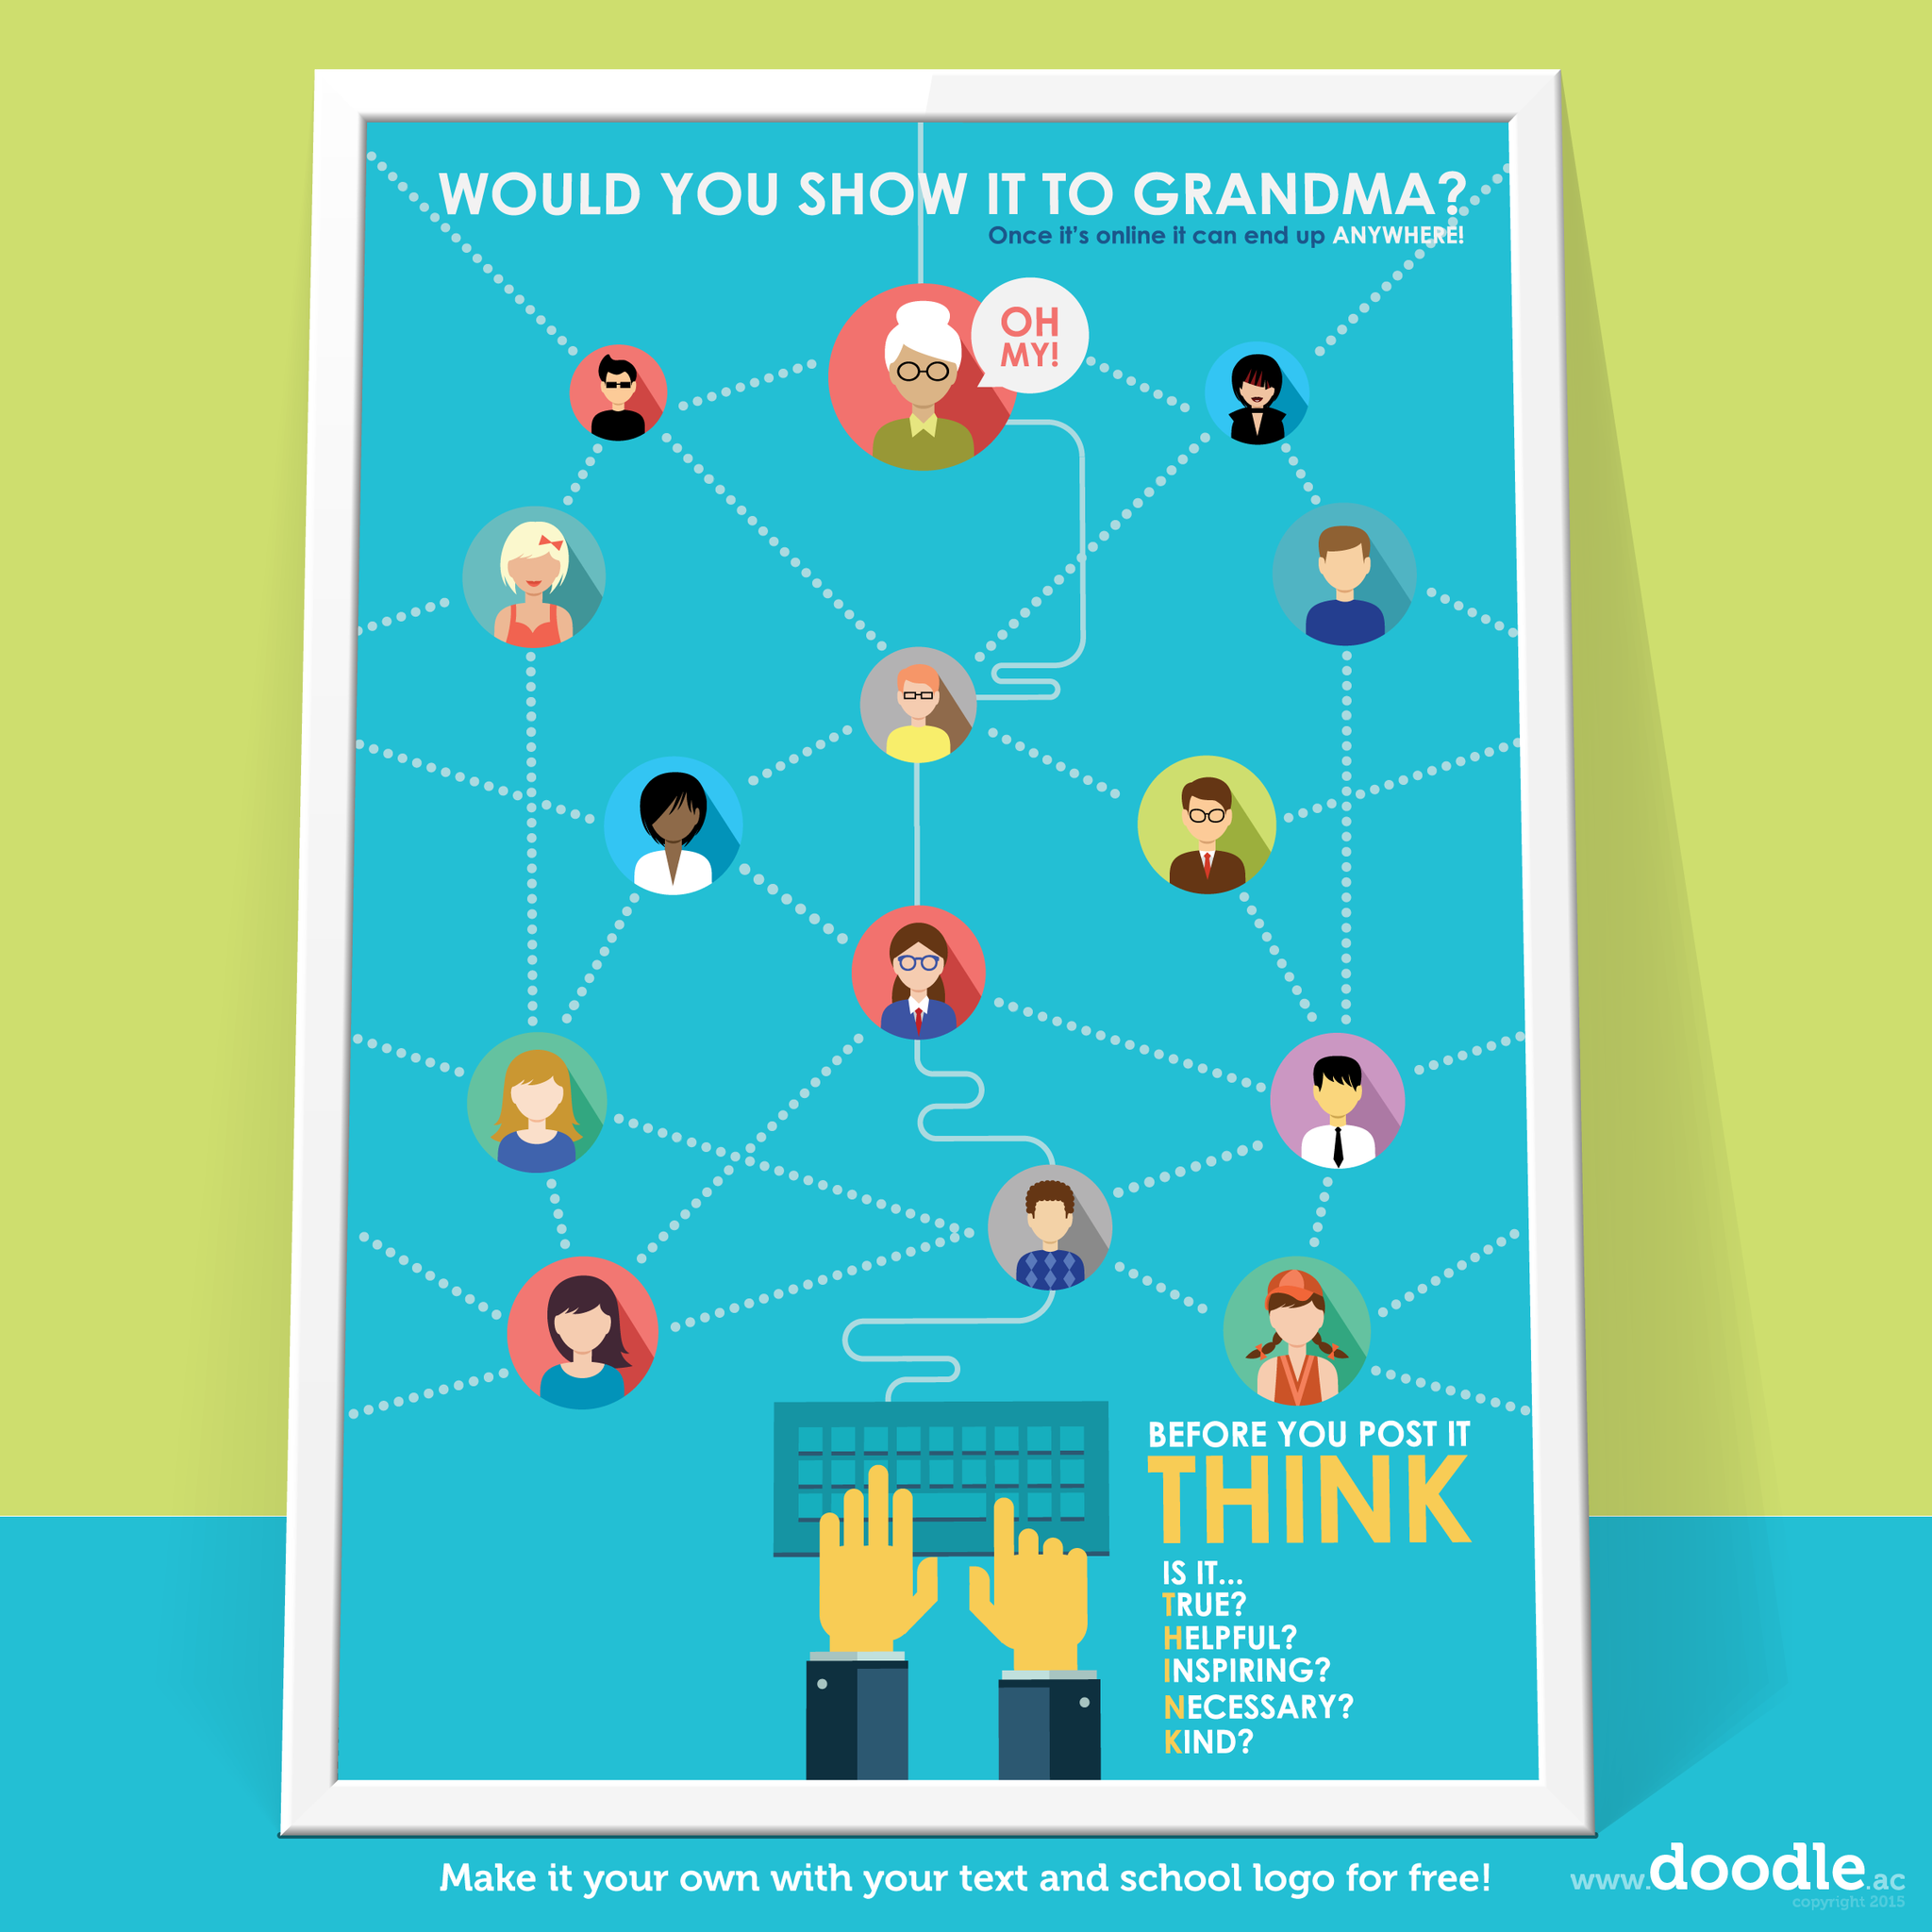 would you show grandma? poster - doodle education